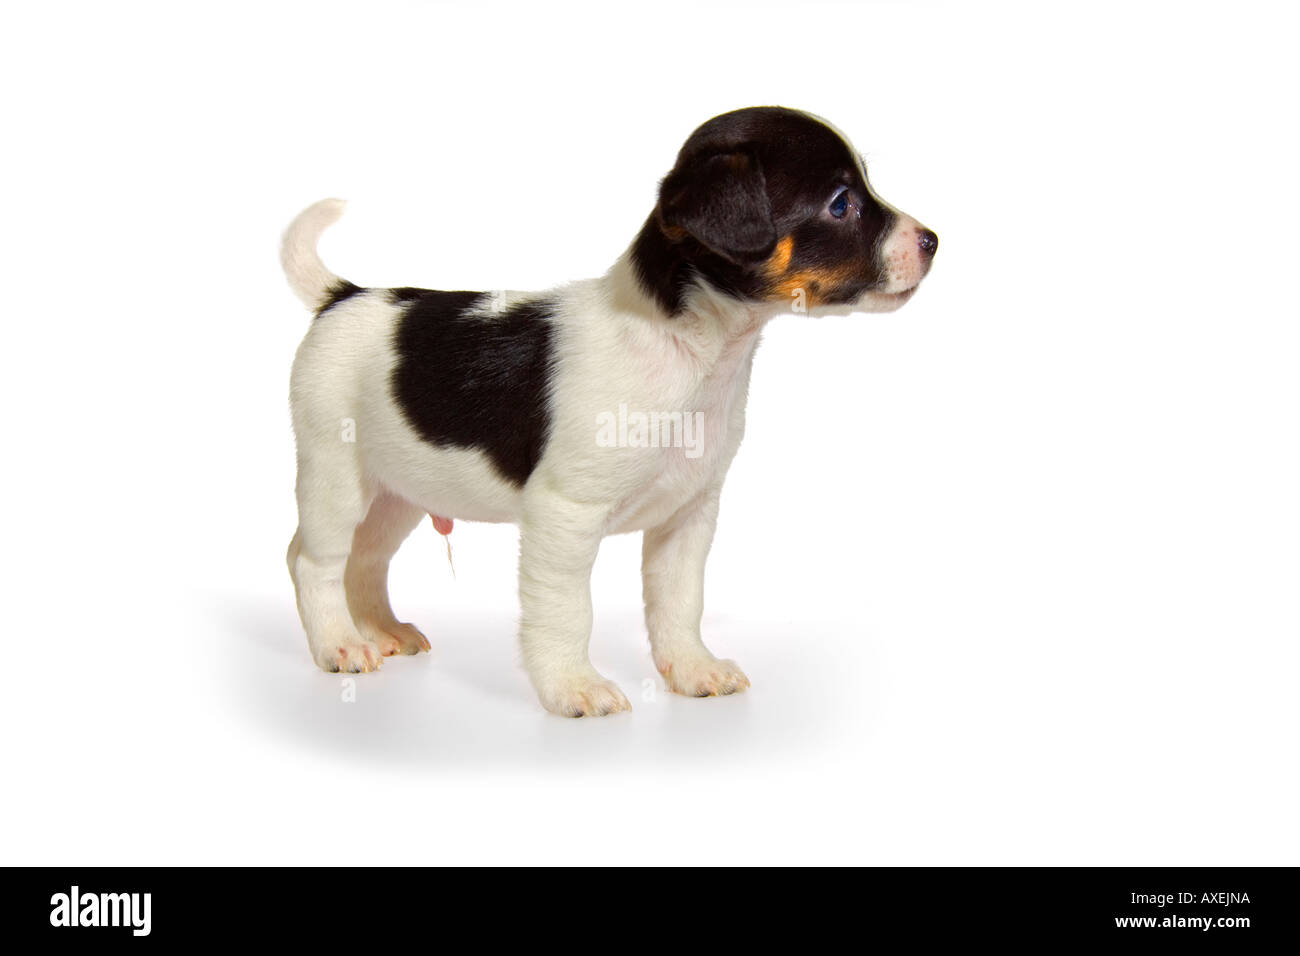 Jack russell terrier black and white puppies